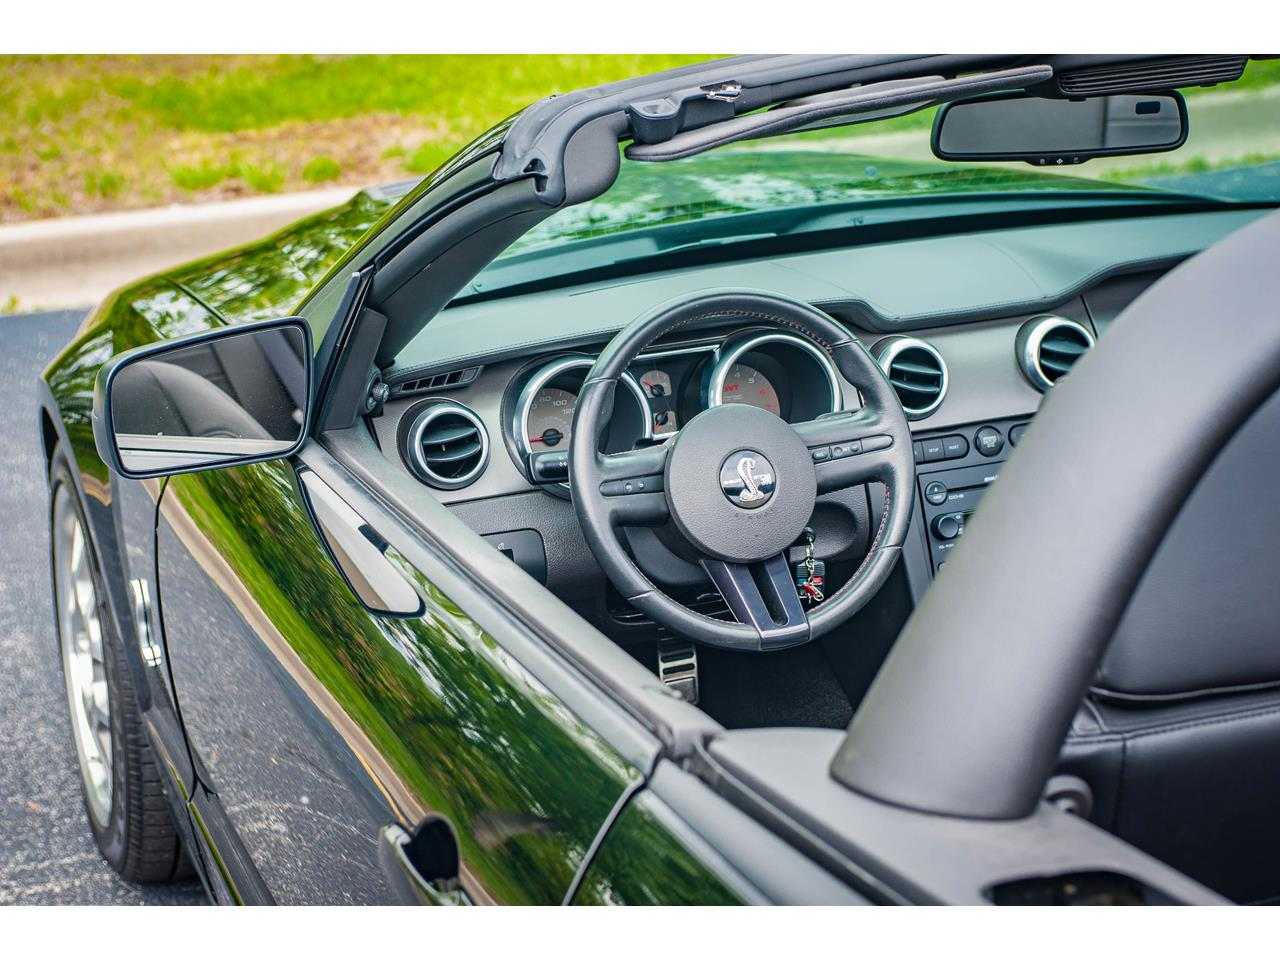 Large Picture of 2007 Mustang - $40,500.00 Offered by Gateway Classic Cars - St. Louis - QB98